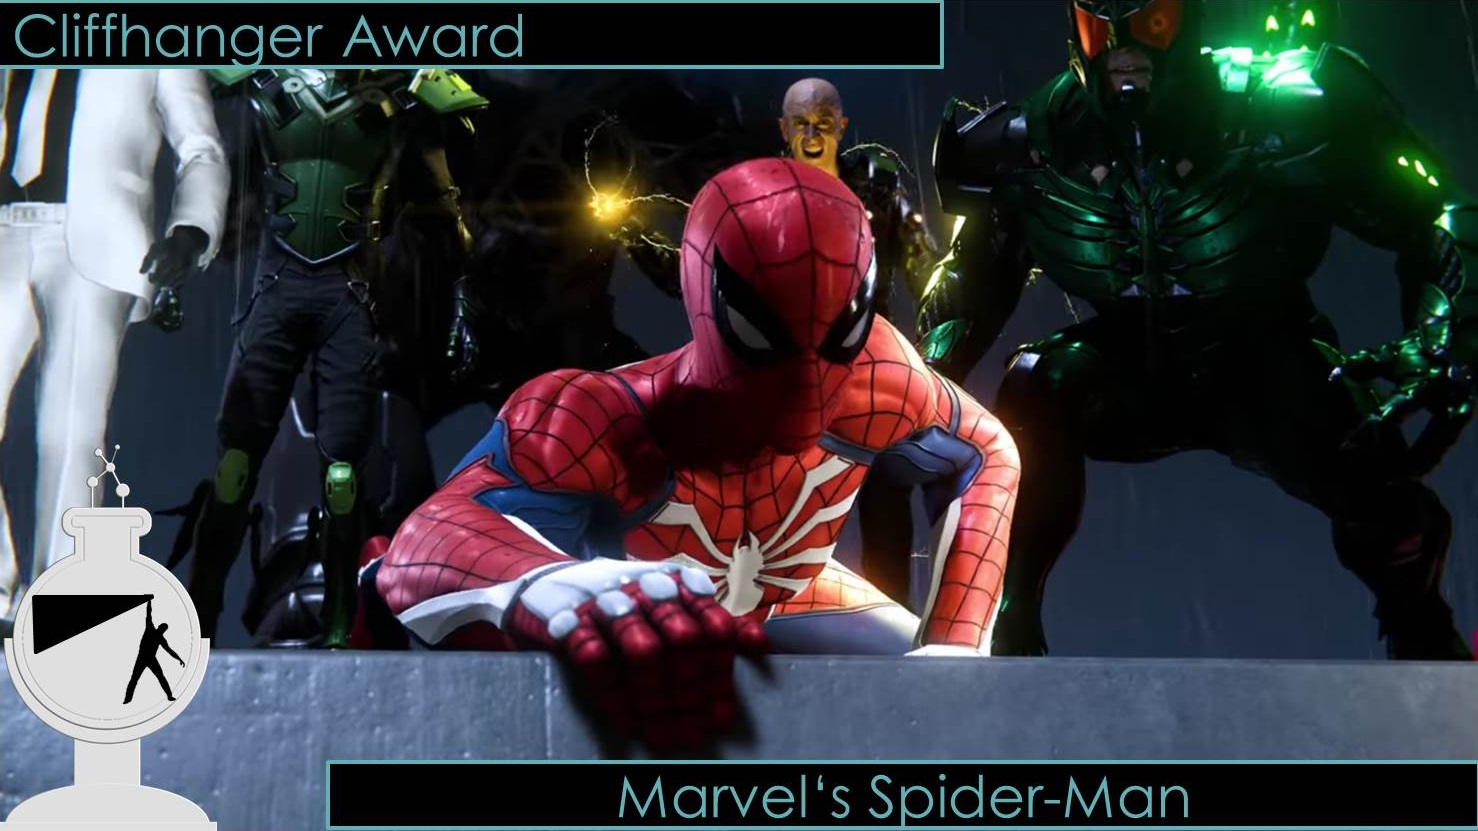 e3 2018 Cliffhanger award spider-man